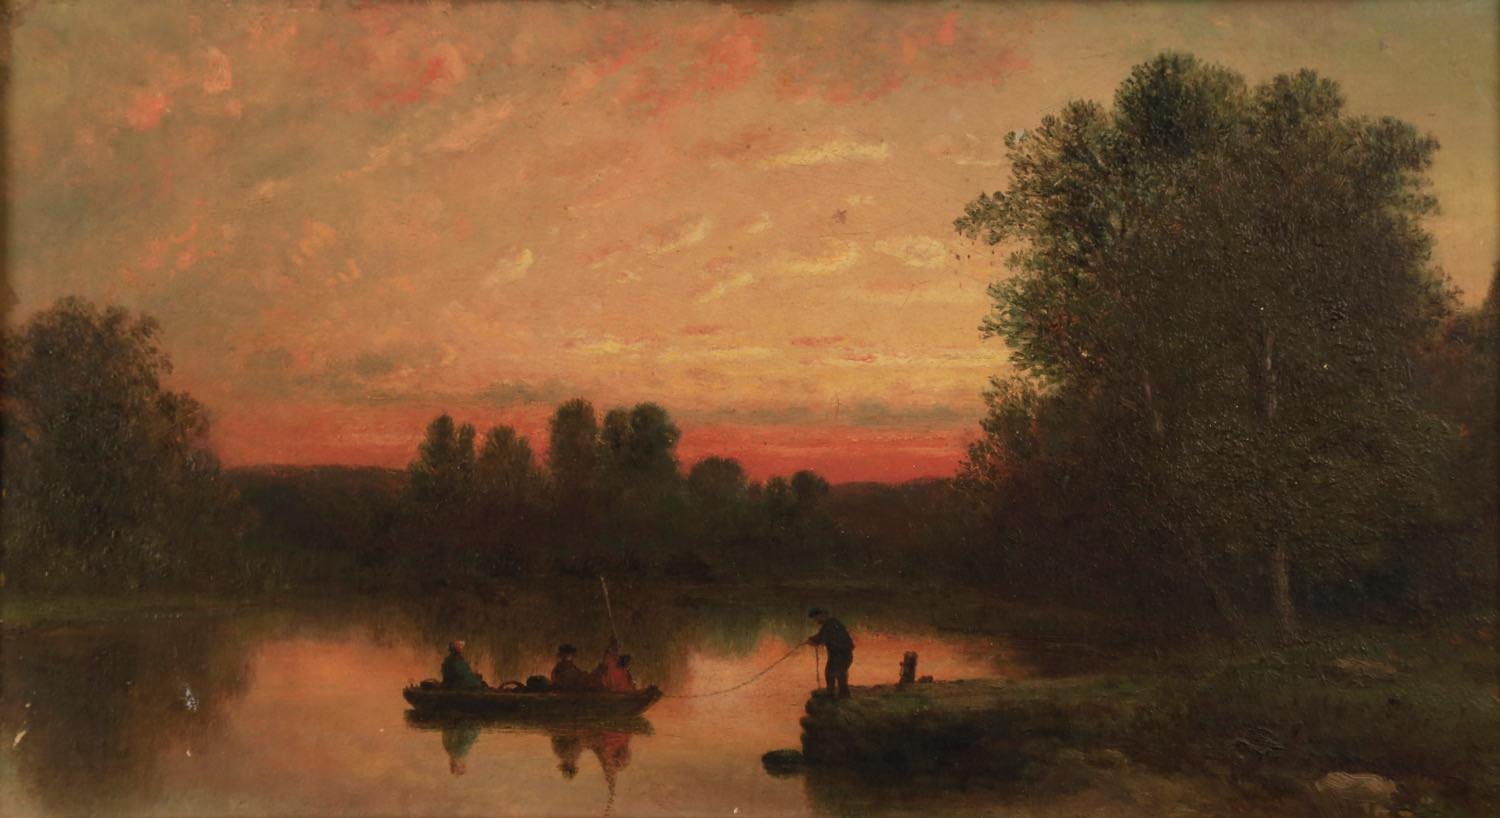 19thc. American School - Fishing at Twilight